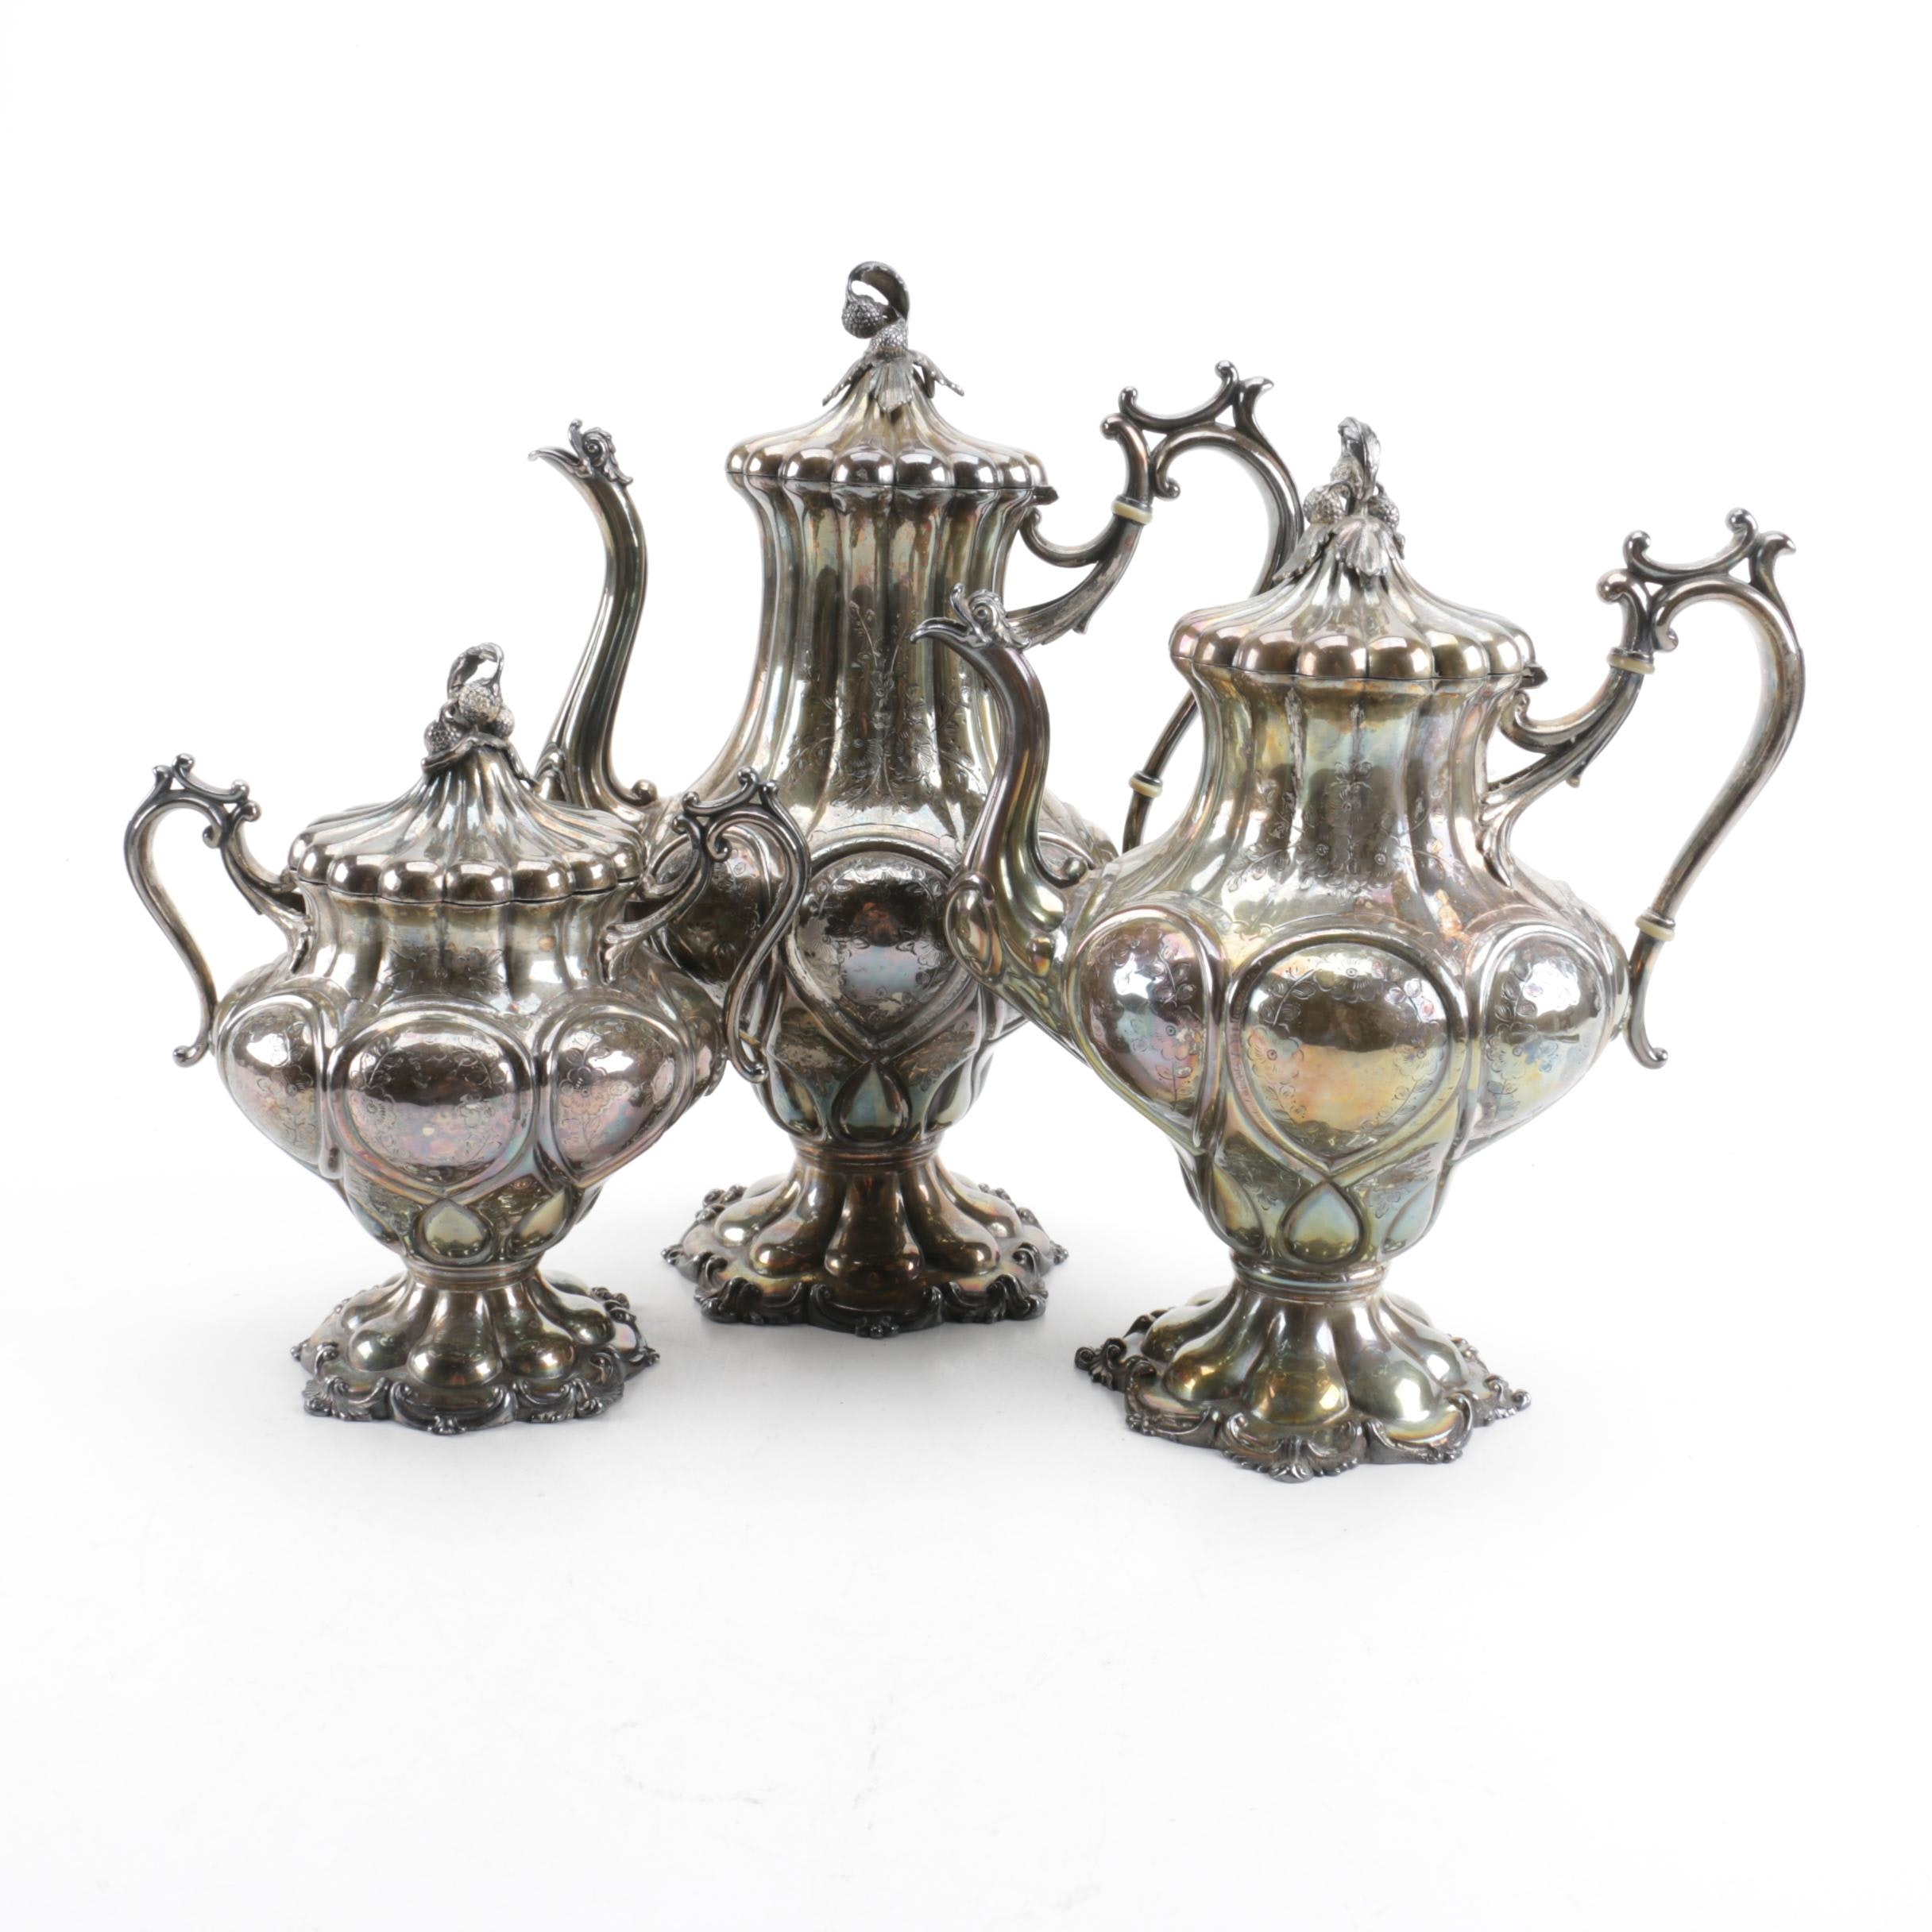 Reed & Barton Silver Plated Coffee and Tea Service